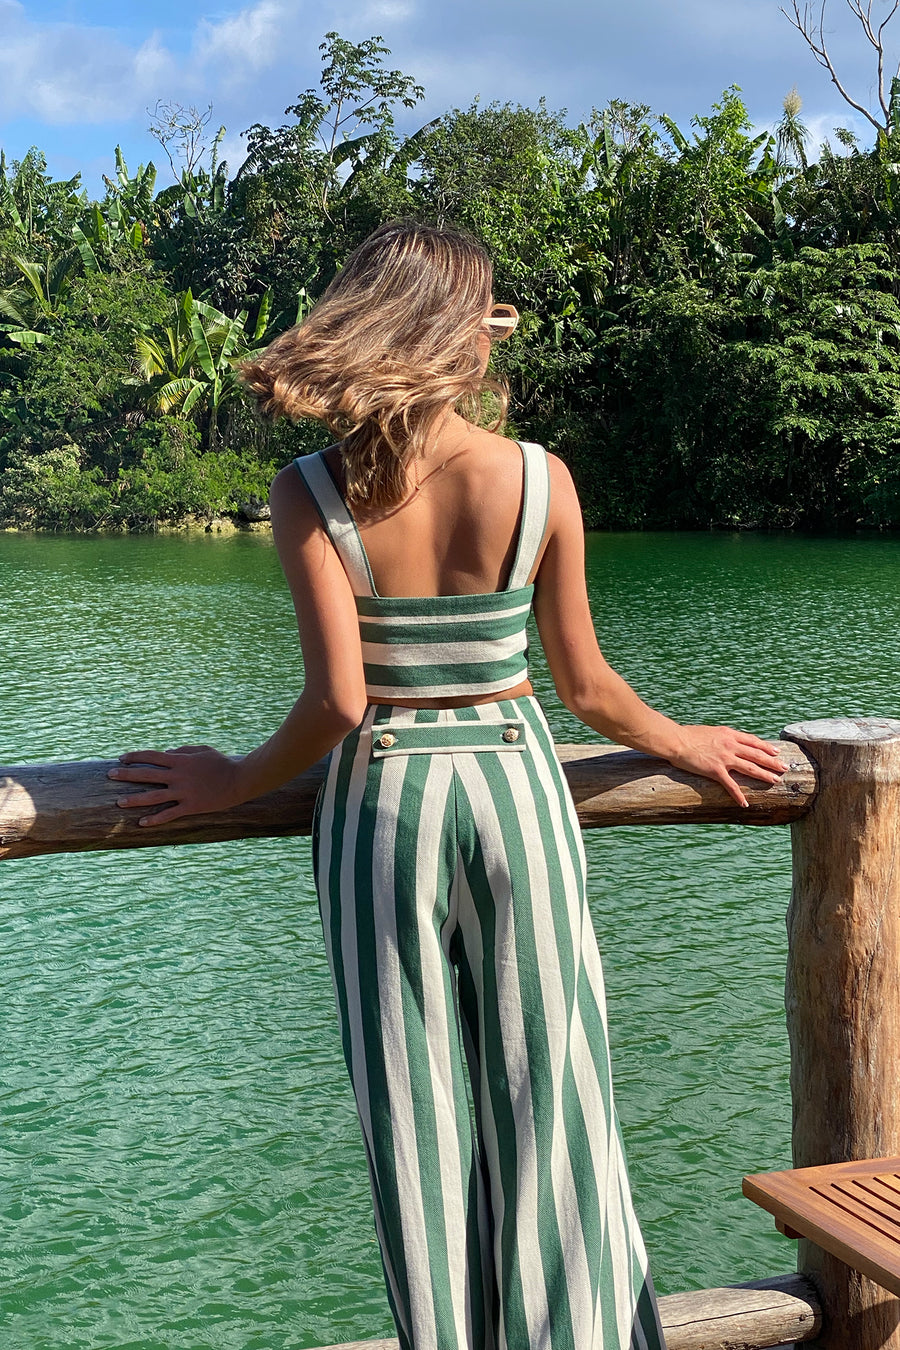 This is a photo of a woman wearing a matching two piece green striped set with gold buttons.  The pants are high waisted and long with a flare and the top is cropped with straps. She looks to the water behind her from a dock.